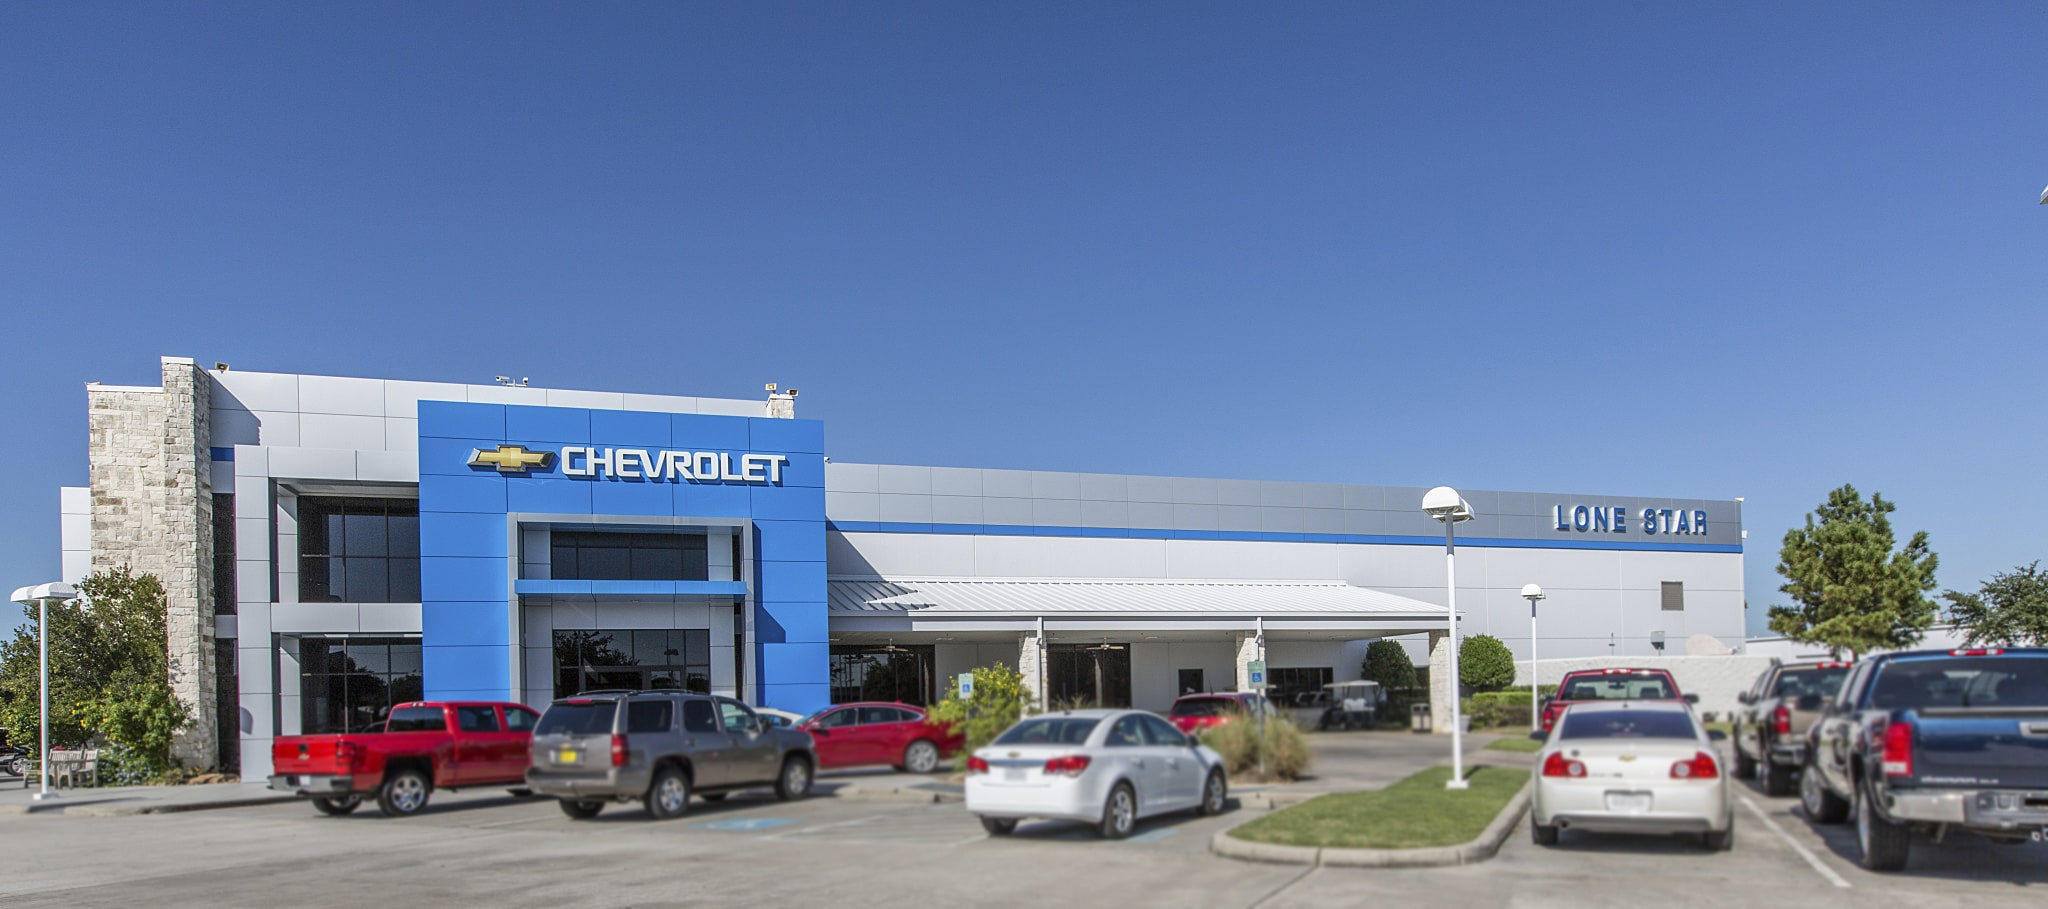 Lone Star Chevrolet New Chevrolet Dealership In Houston TX - Chevrolet dealer in houston tx